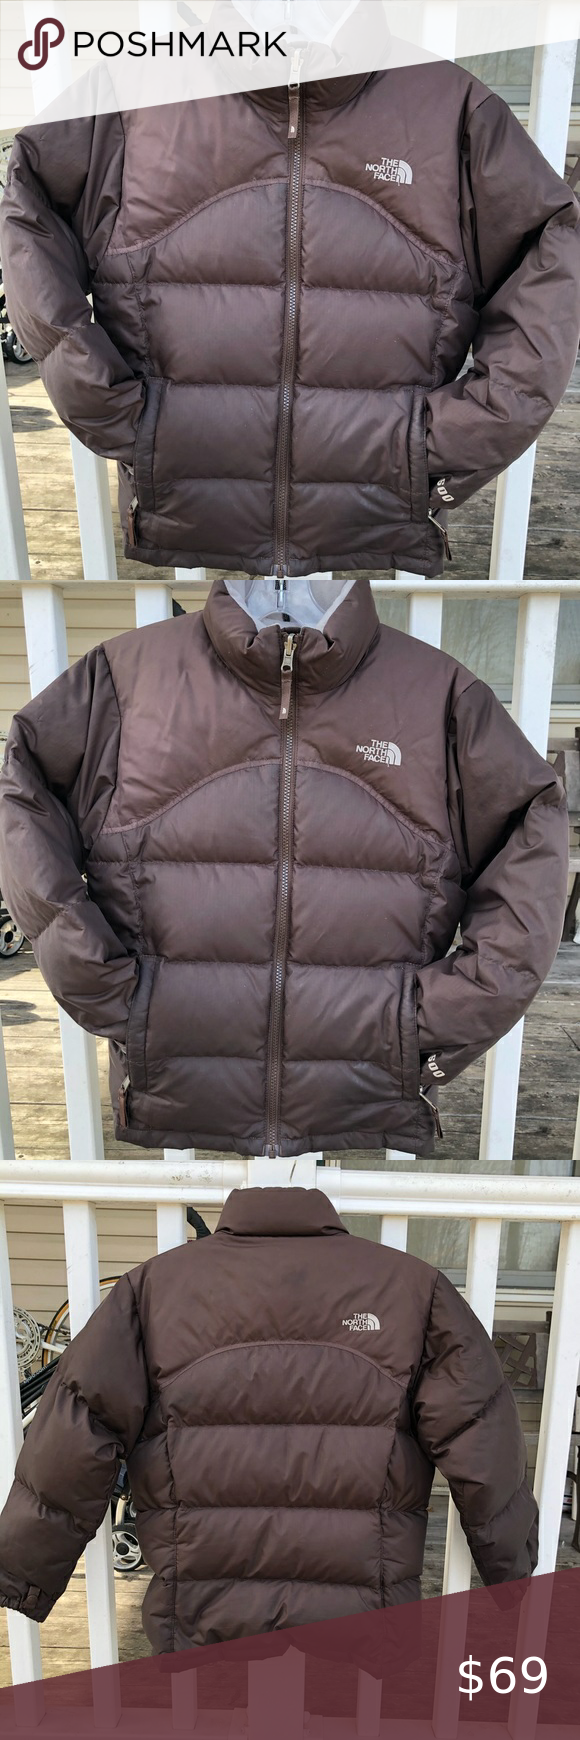 The North Face 600 Puffer Down Girls Brown Coat Brown Coat The North Face Clothes Design [ 1740 x 580 Pixel ]